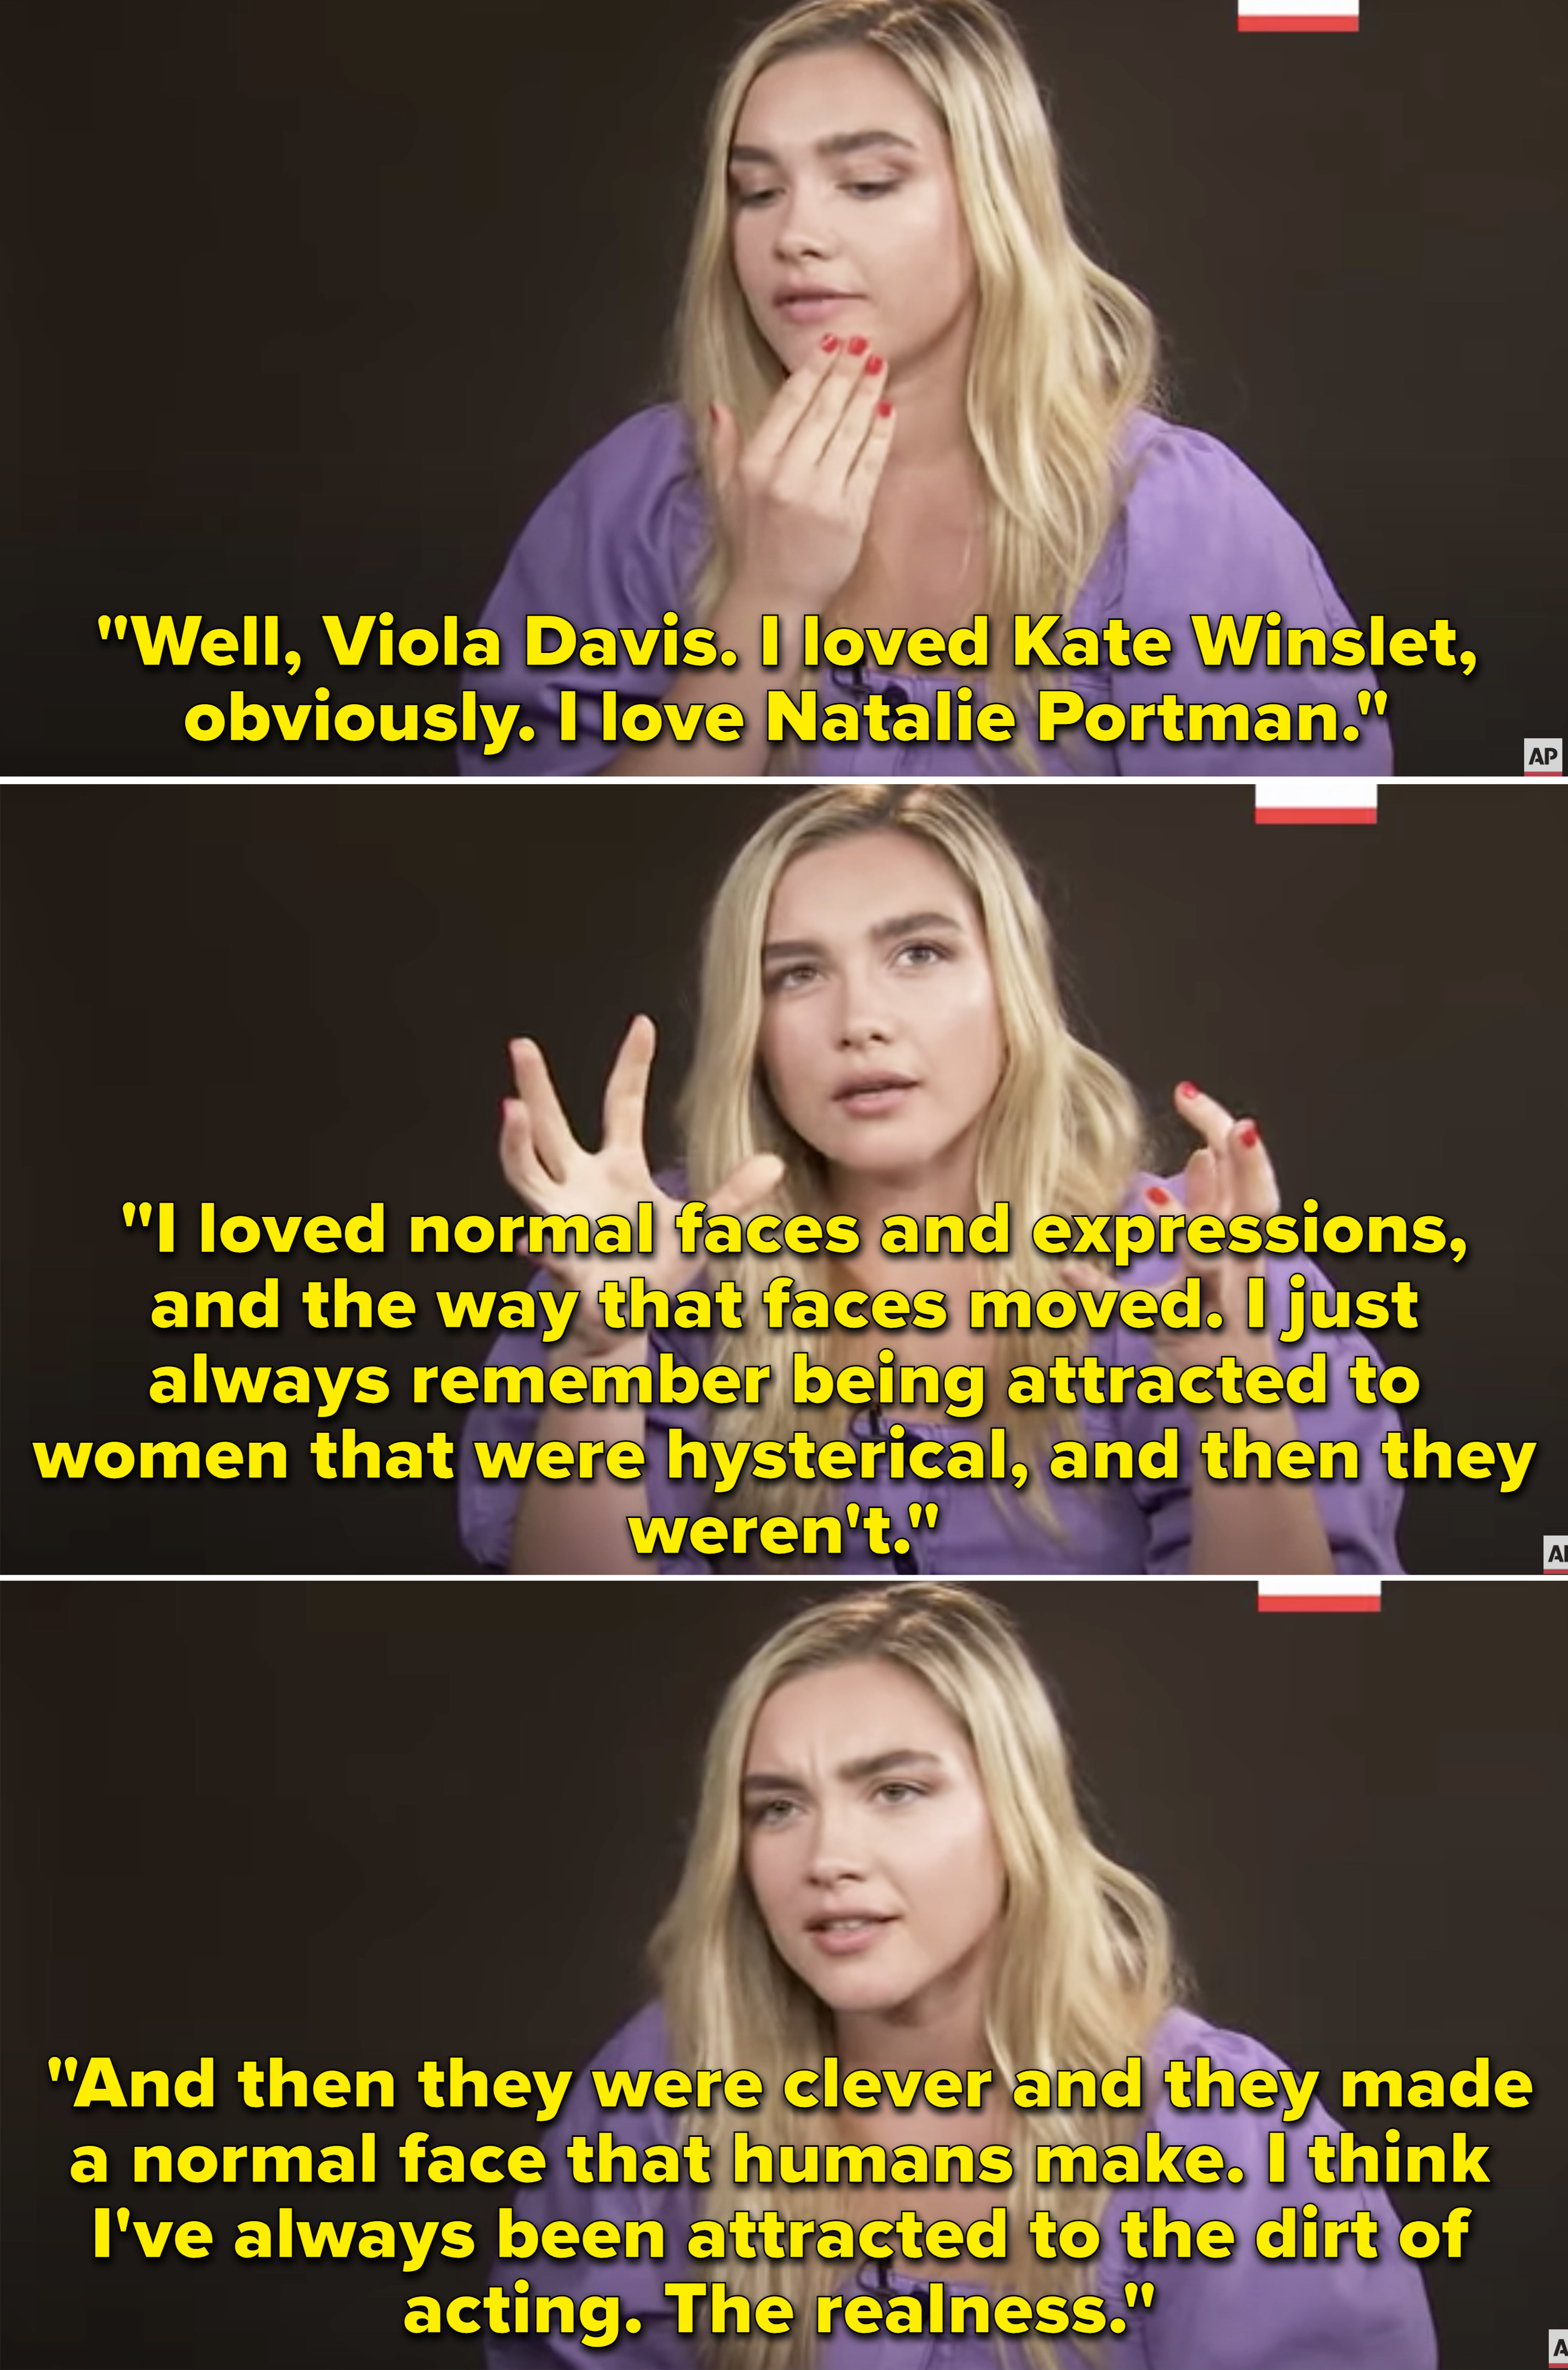 """Florence explaining that she loved Viola Davis, Kate Winslet, and Natalie Portman growing up because she """"loved normal faces and expressions"""""""